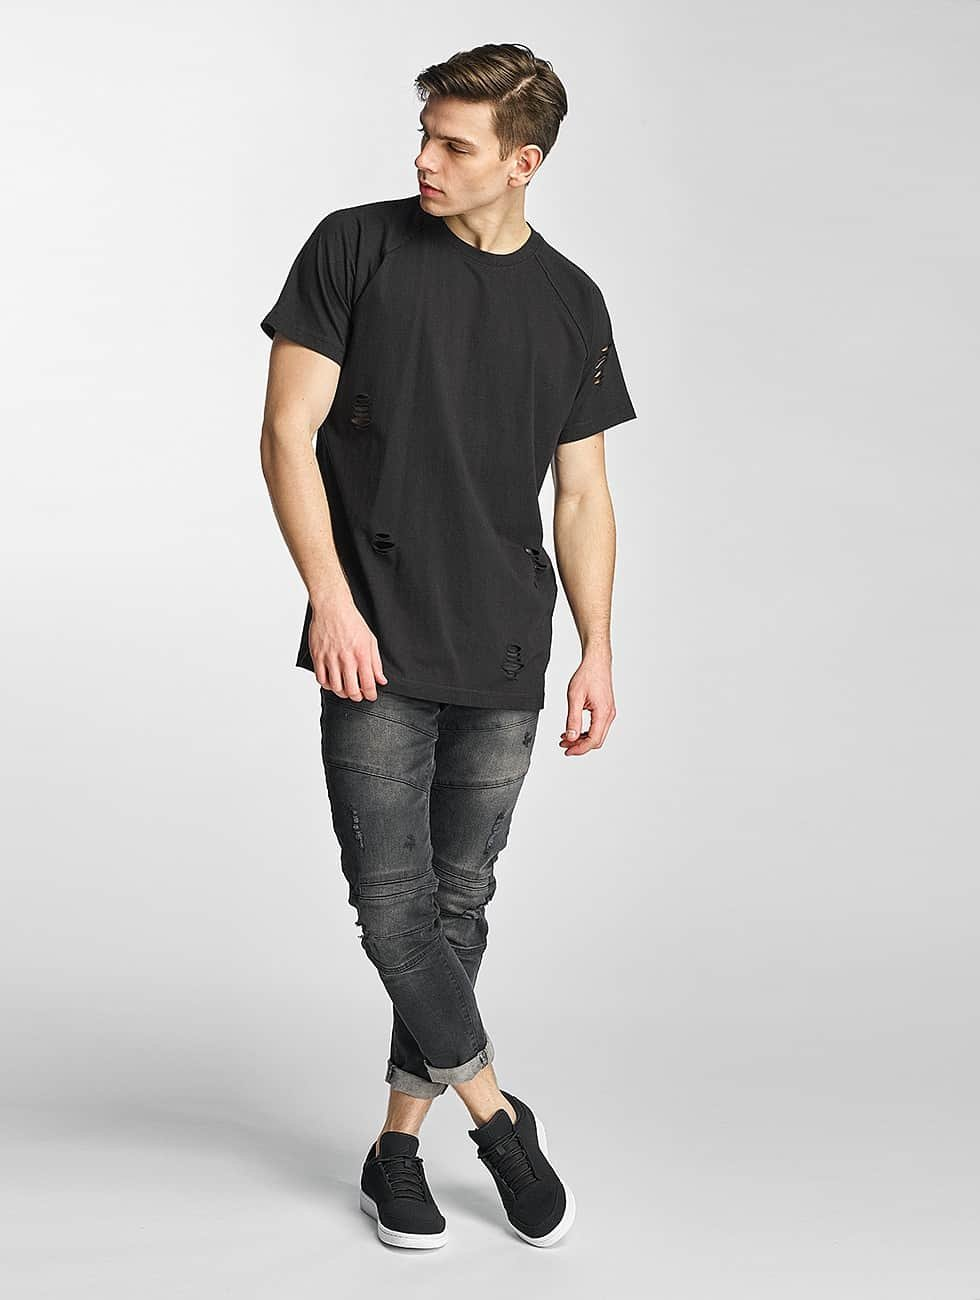 Urban Classics T-Shirt Ripped black